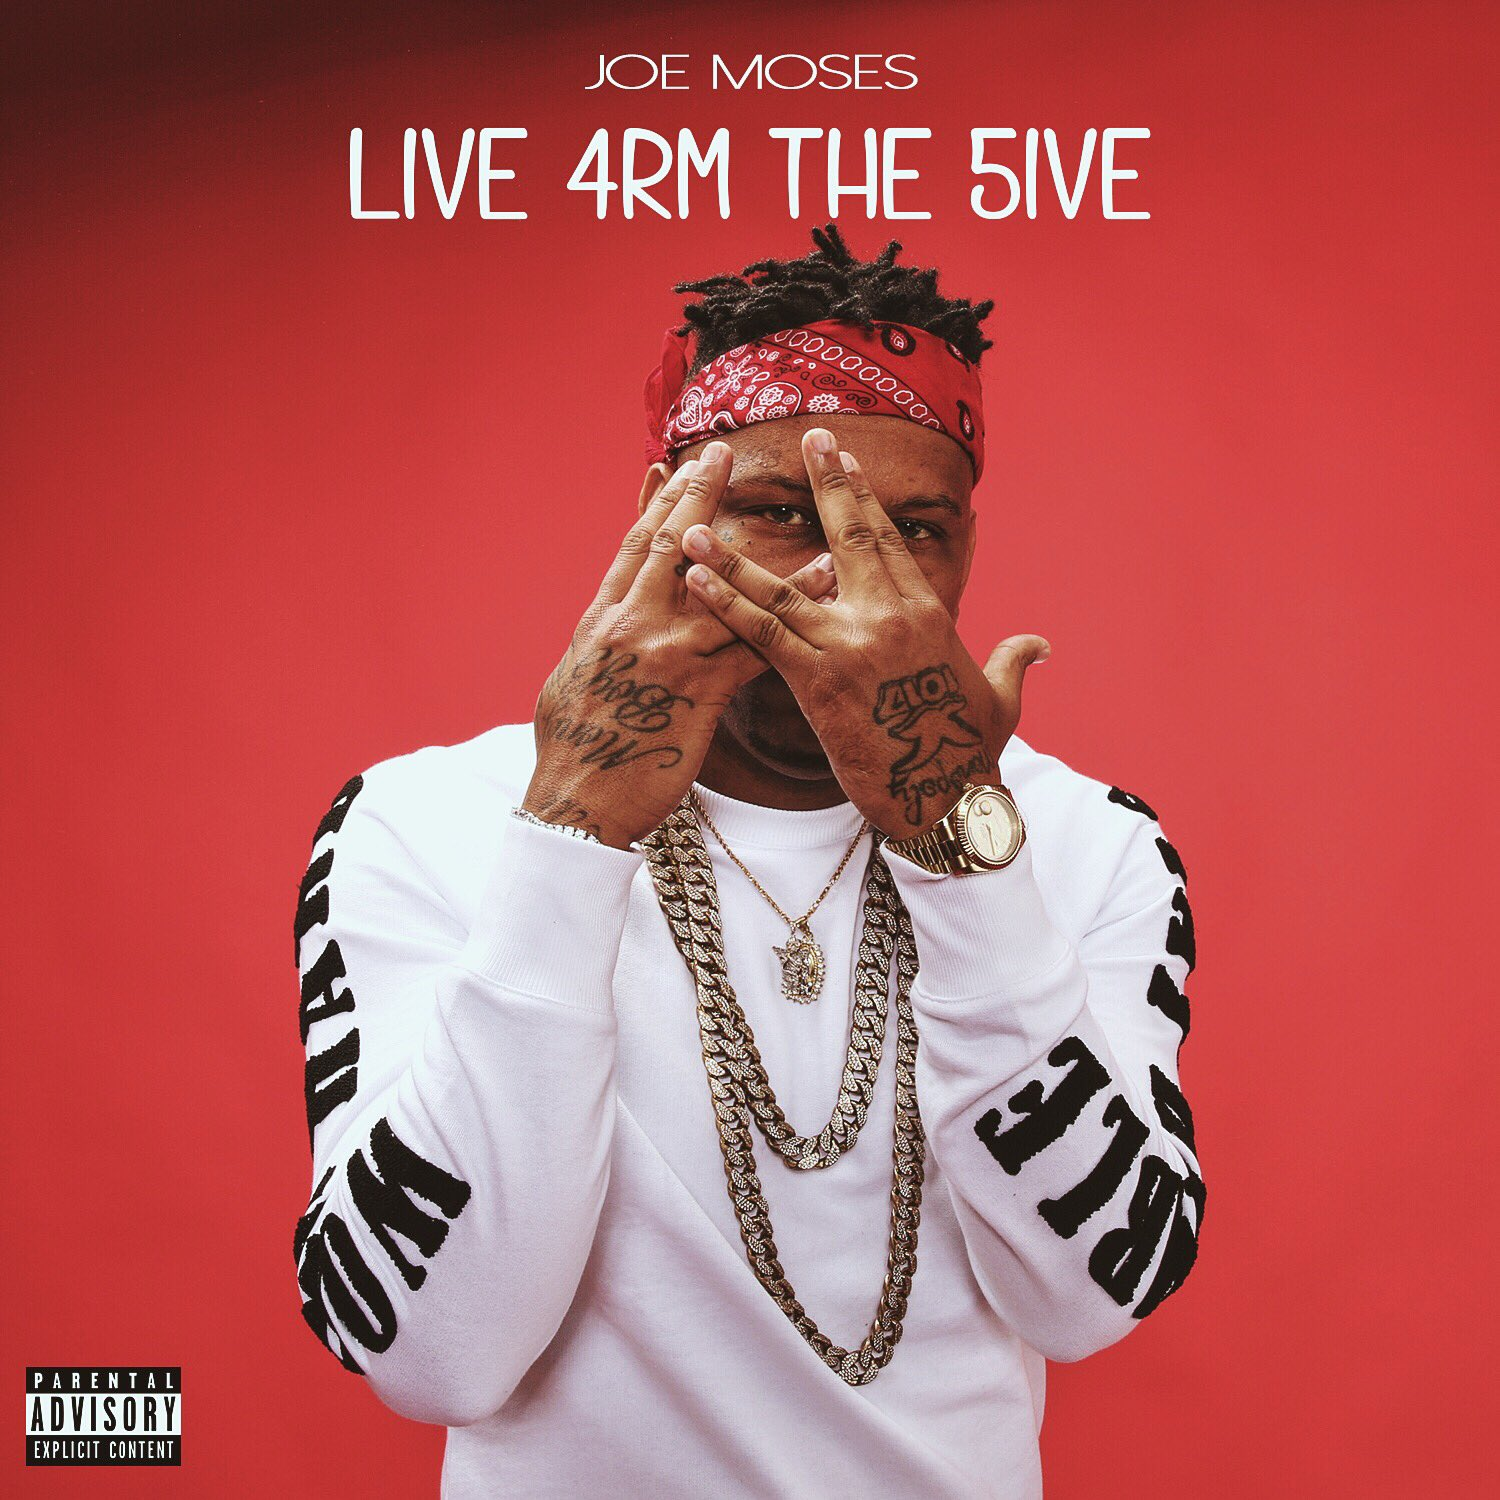 live4rmthe5ive